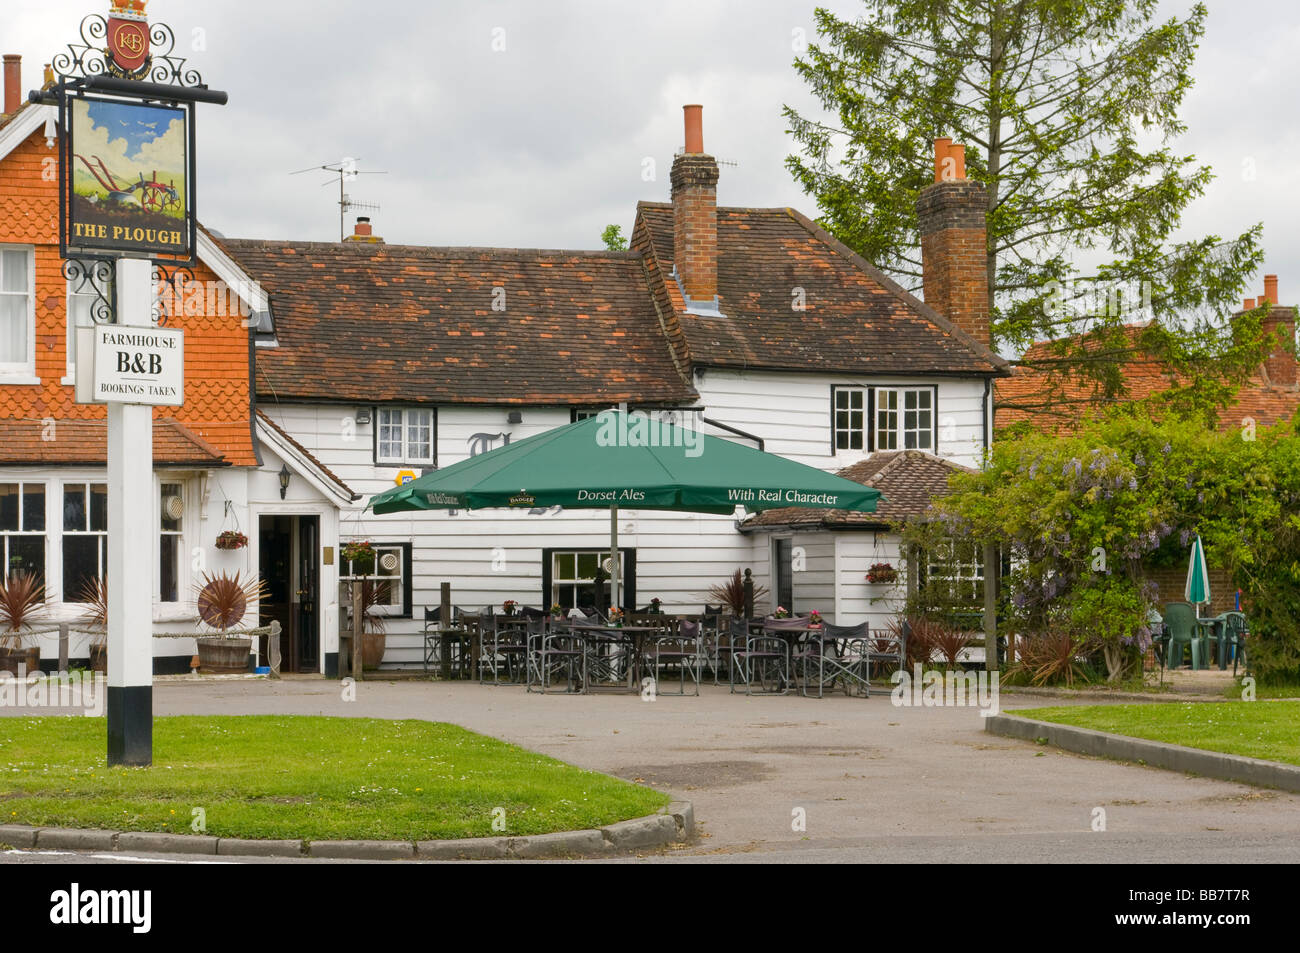 The Plough Public House Leigh Surrey - Stock Image